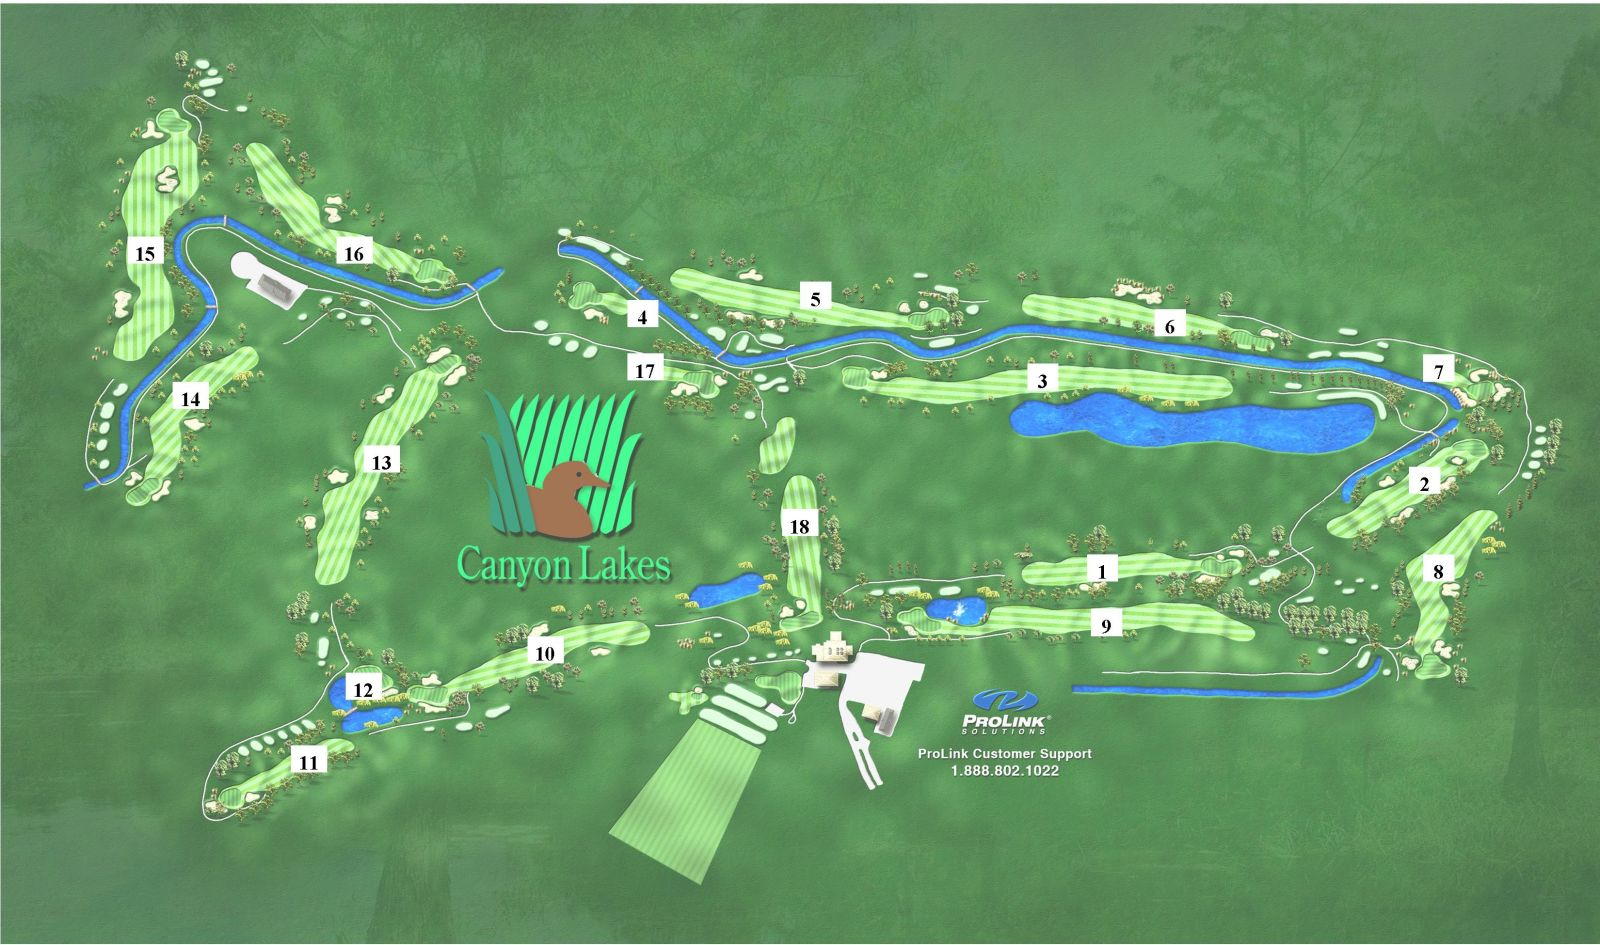 Canyon Lakes Golf Course Map and Link to it on their website